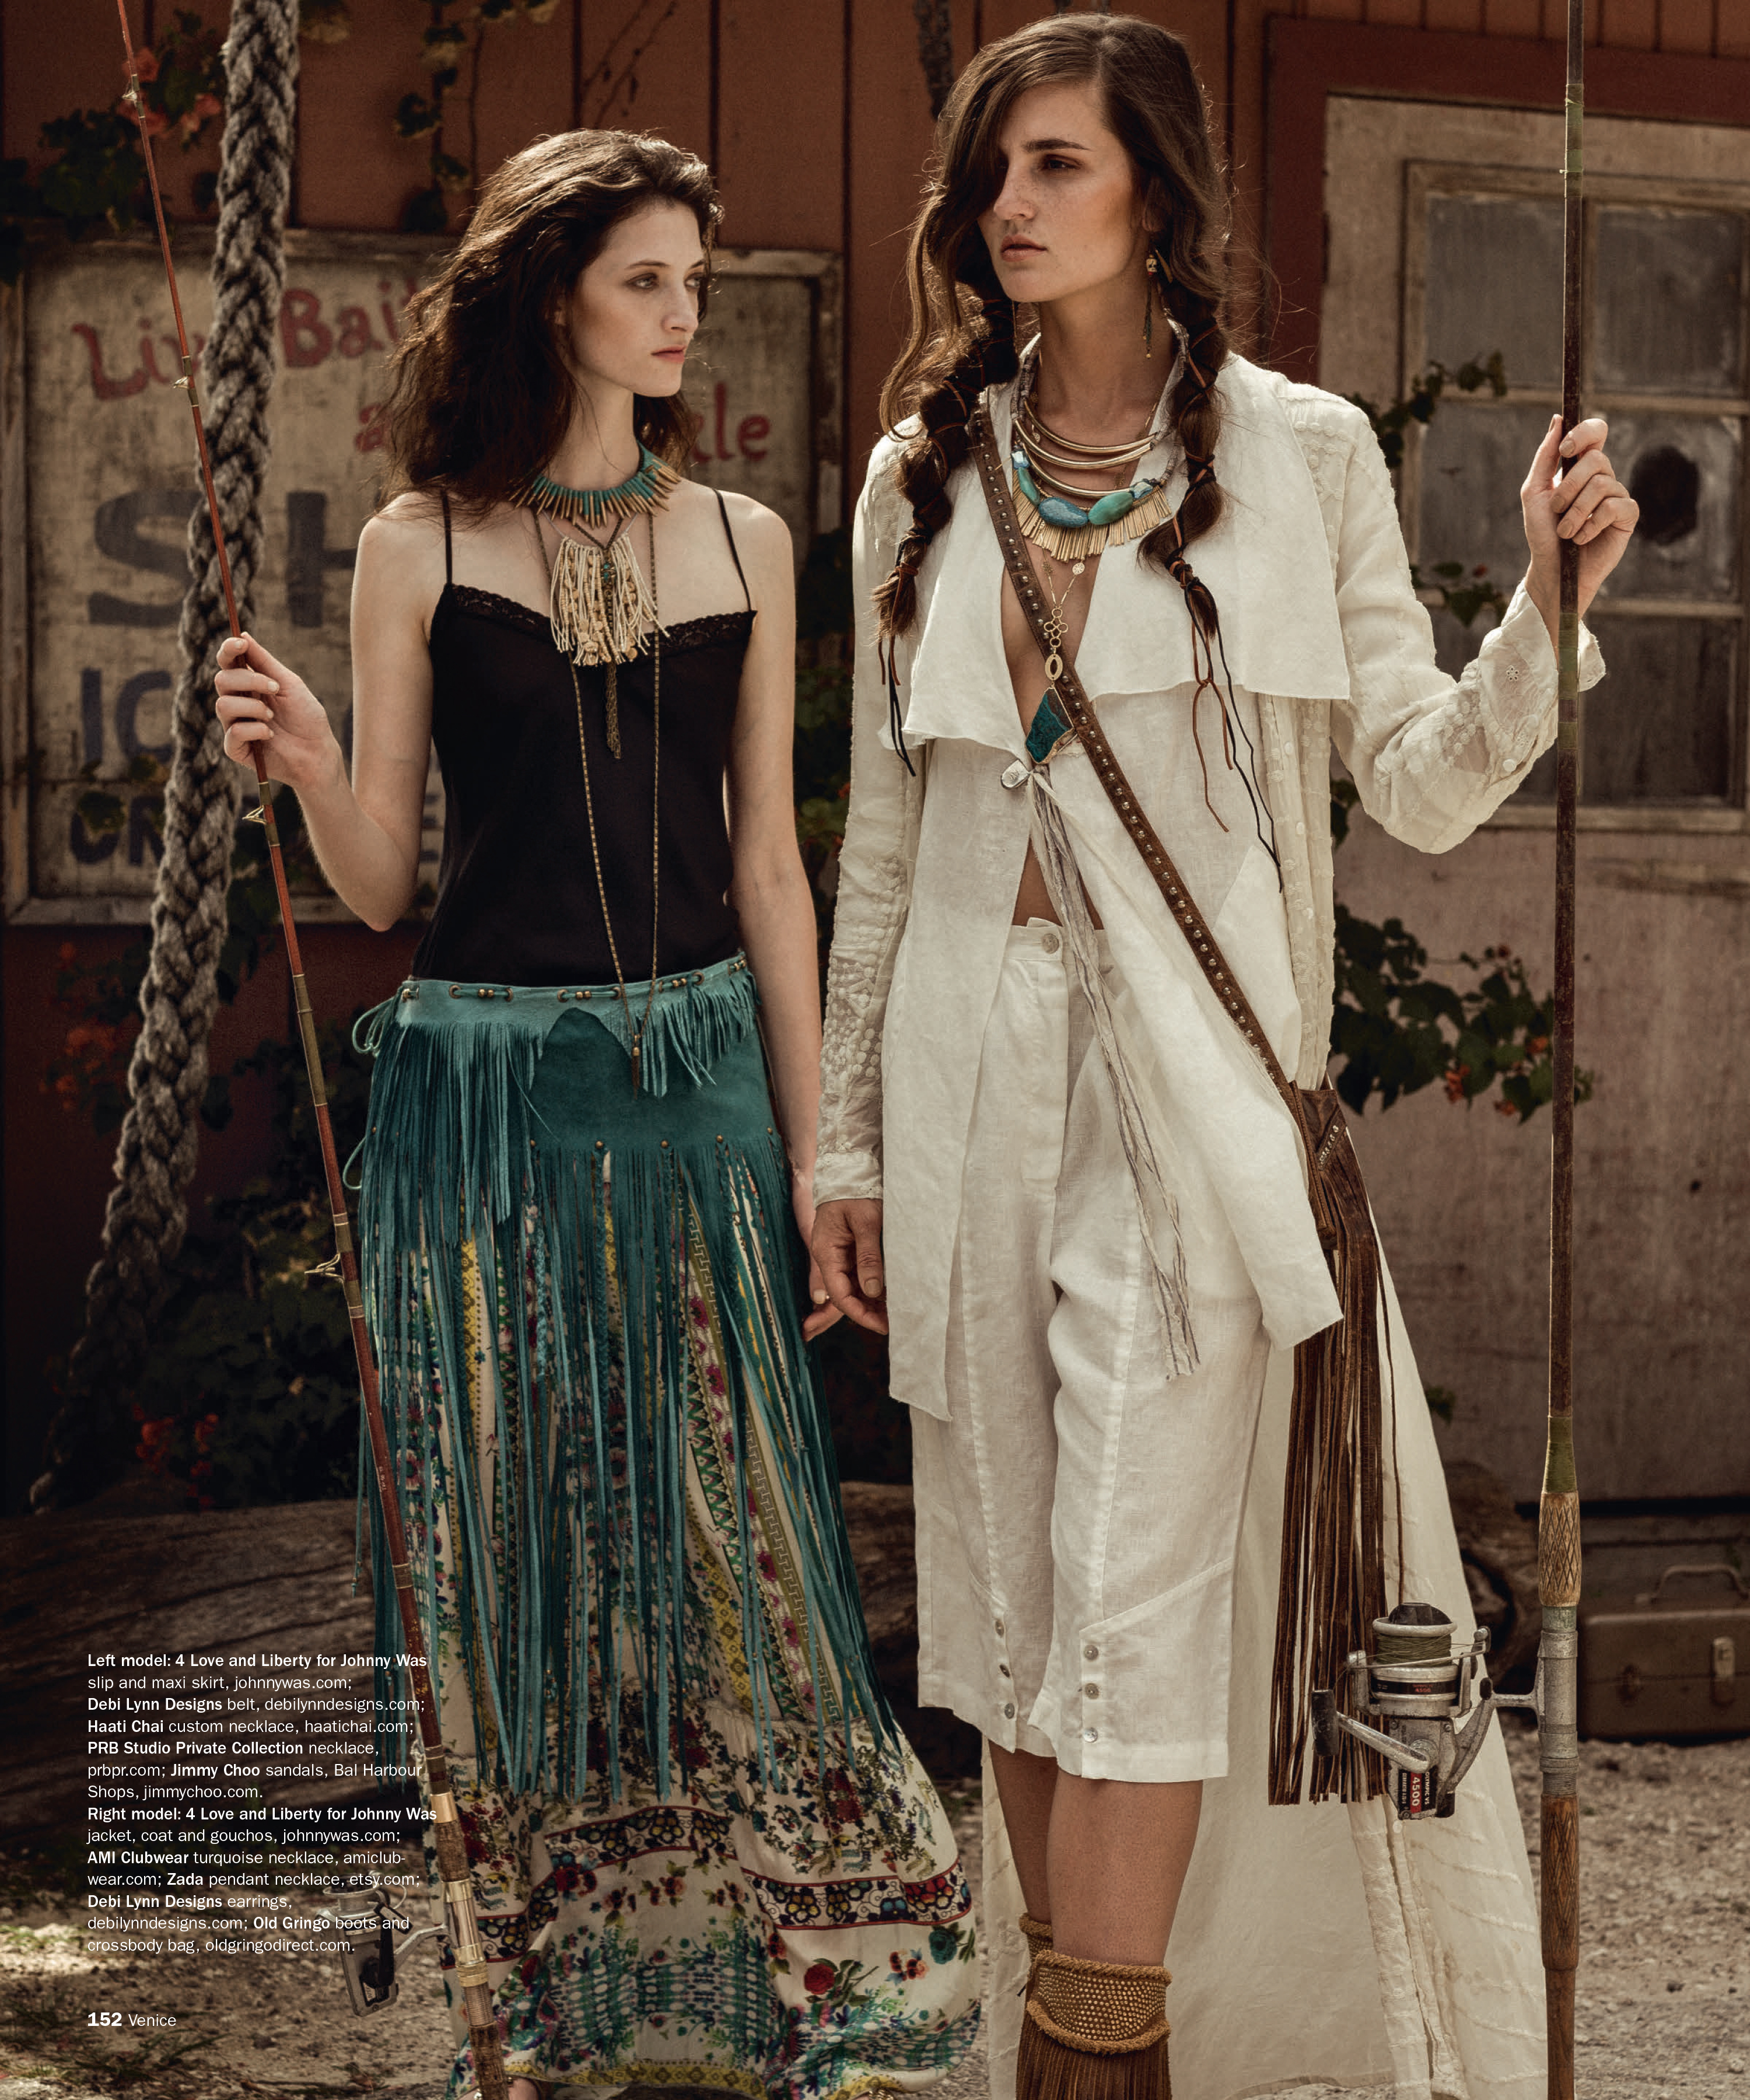 VENICE491479-Spring 2015_selected-pages-3 copy.jpg